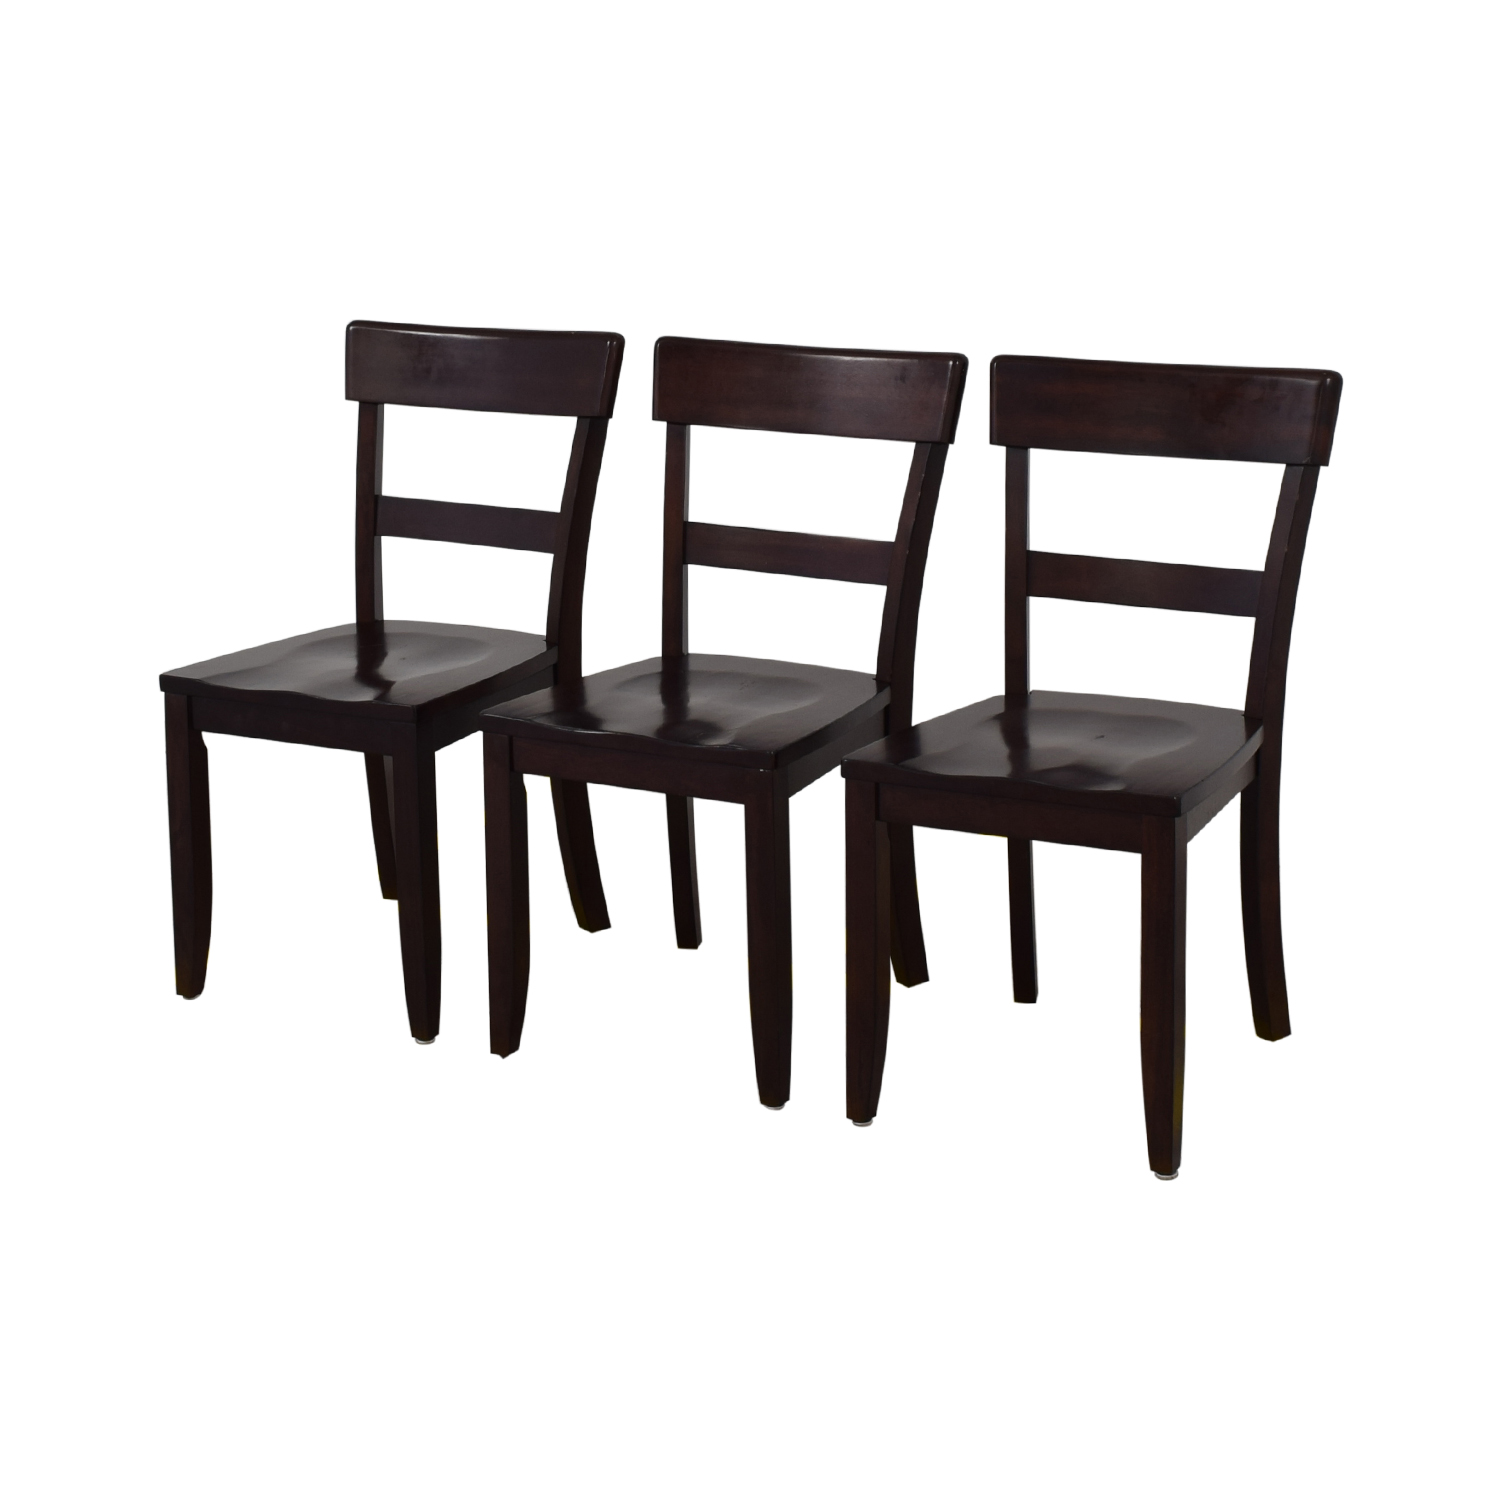 76% OFF - Pottery Barn Pottery Barn Metropolitan Dining Chairs / Chairs